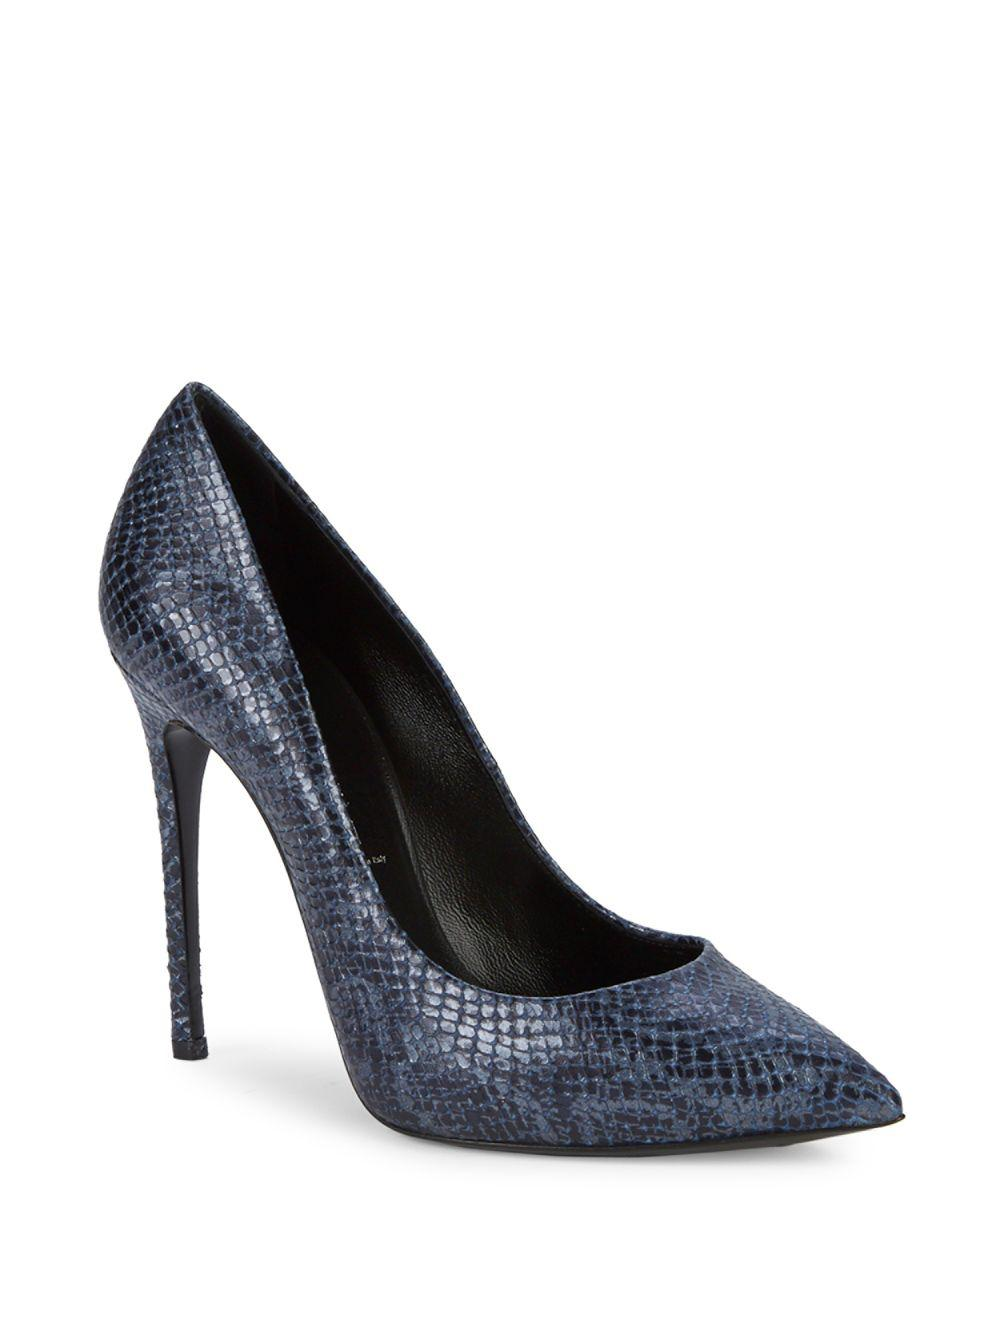 3fd675a00 Casadei Lugo Textured Leather Pumps in Gray - Lyst